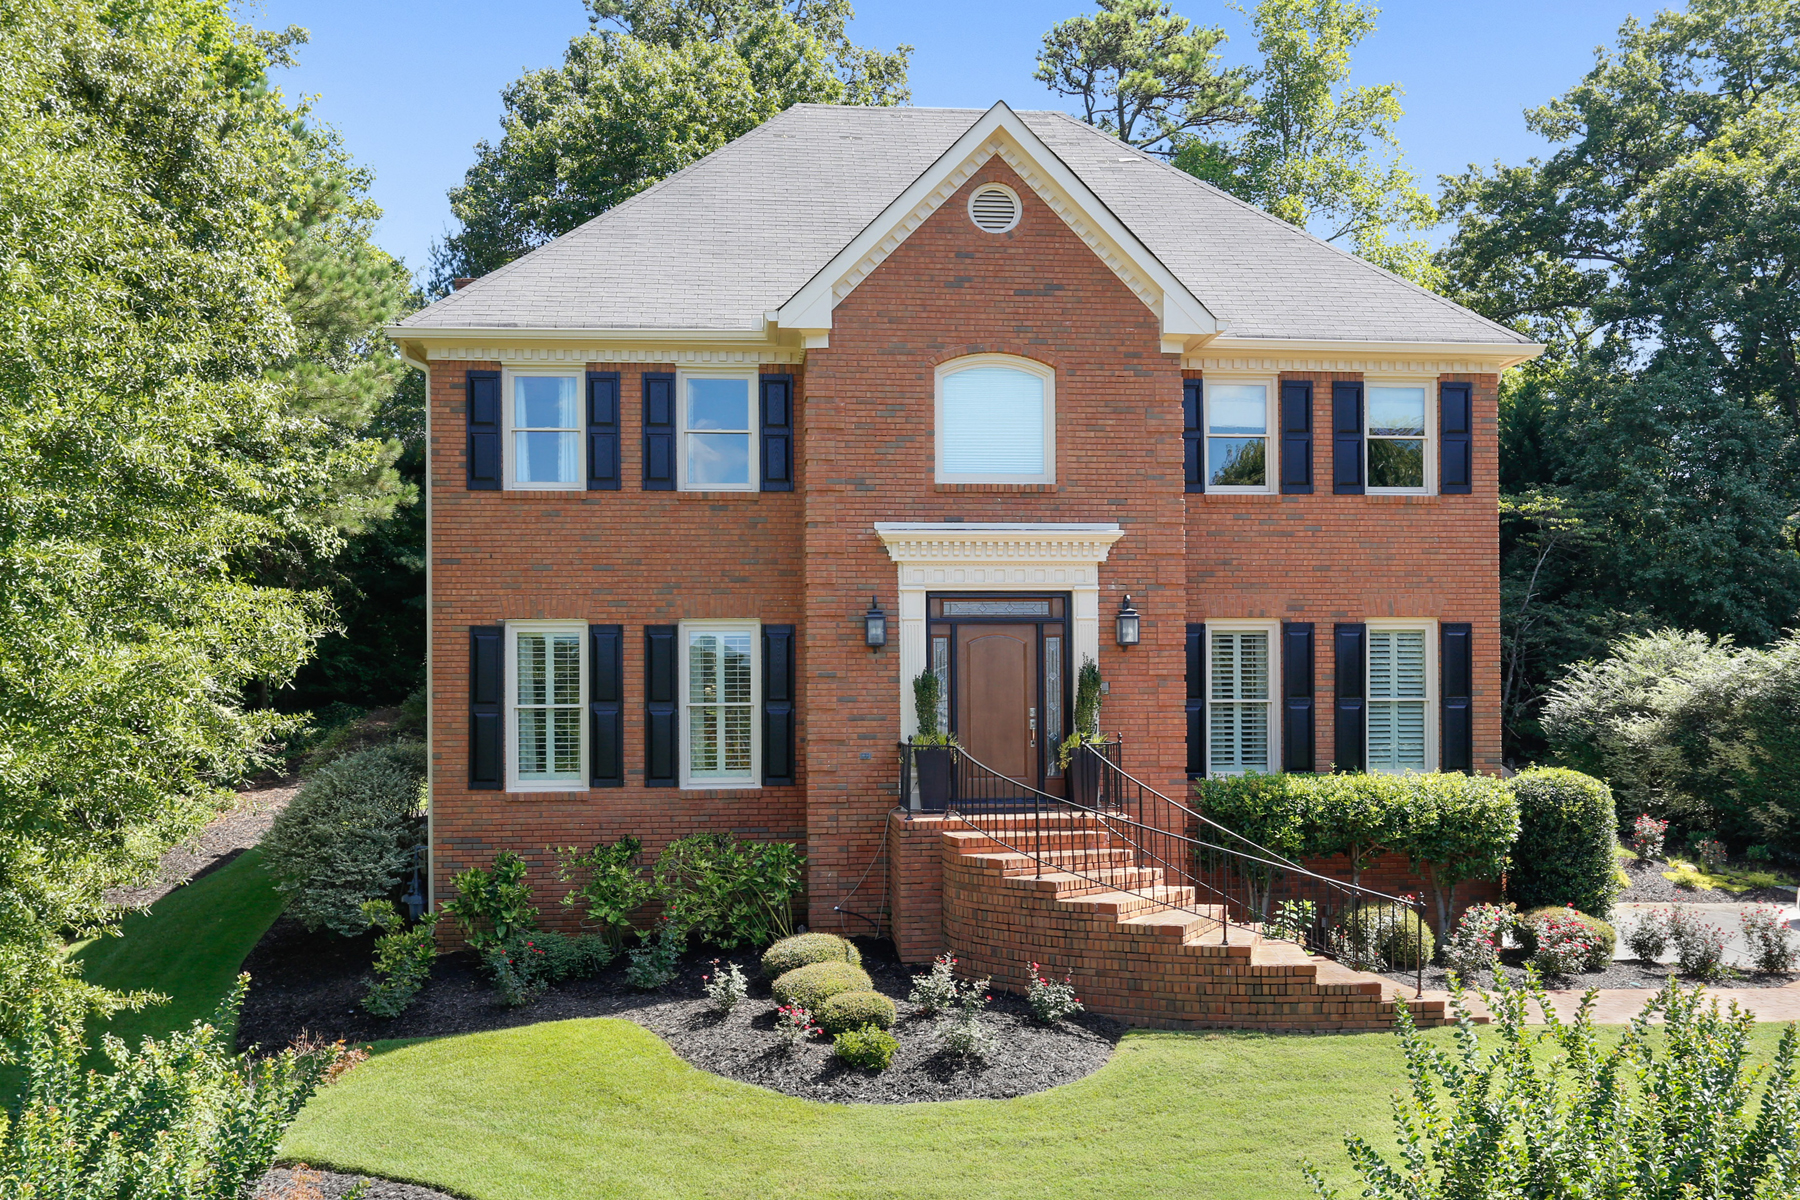 Villa per Vendita alle ore Beautifully Maintained Brick Home 839 Byrnwyck Road NE Atlanta, Georgia 30319 Stati Uniti